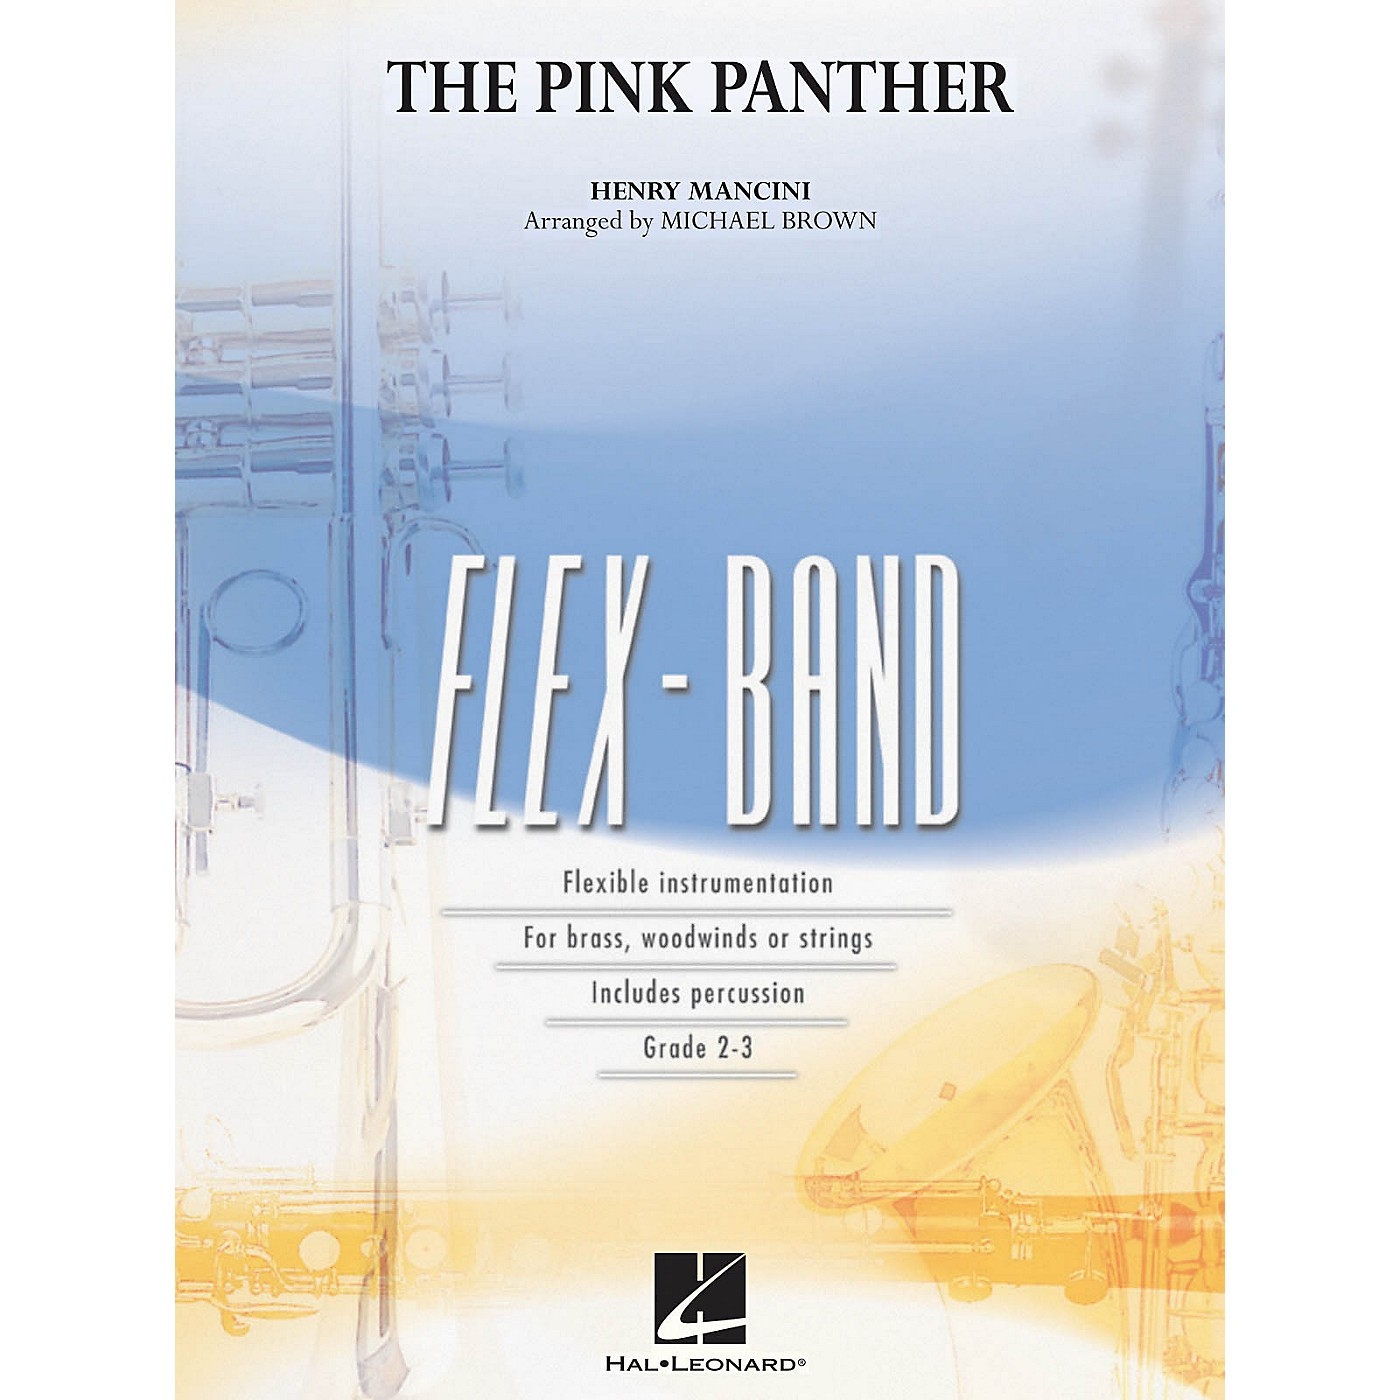 Hal Leonard The Pink Panther Concert Band Level 2-3 Arranged by Michael Brown thumbnail